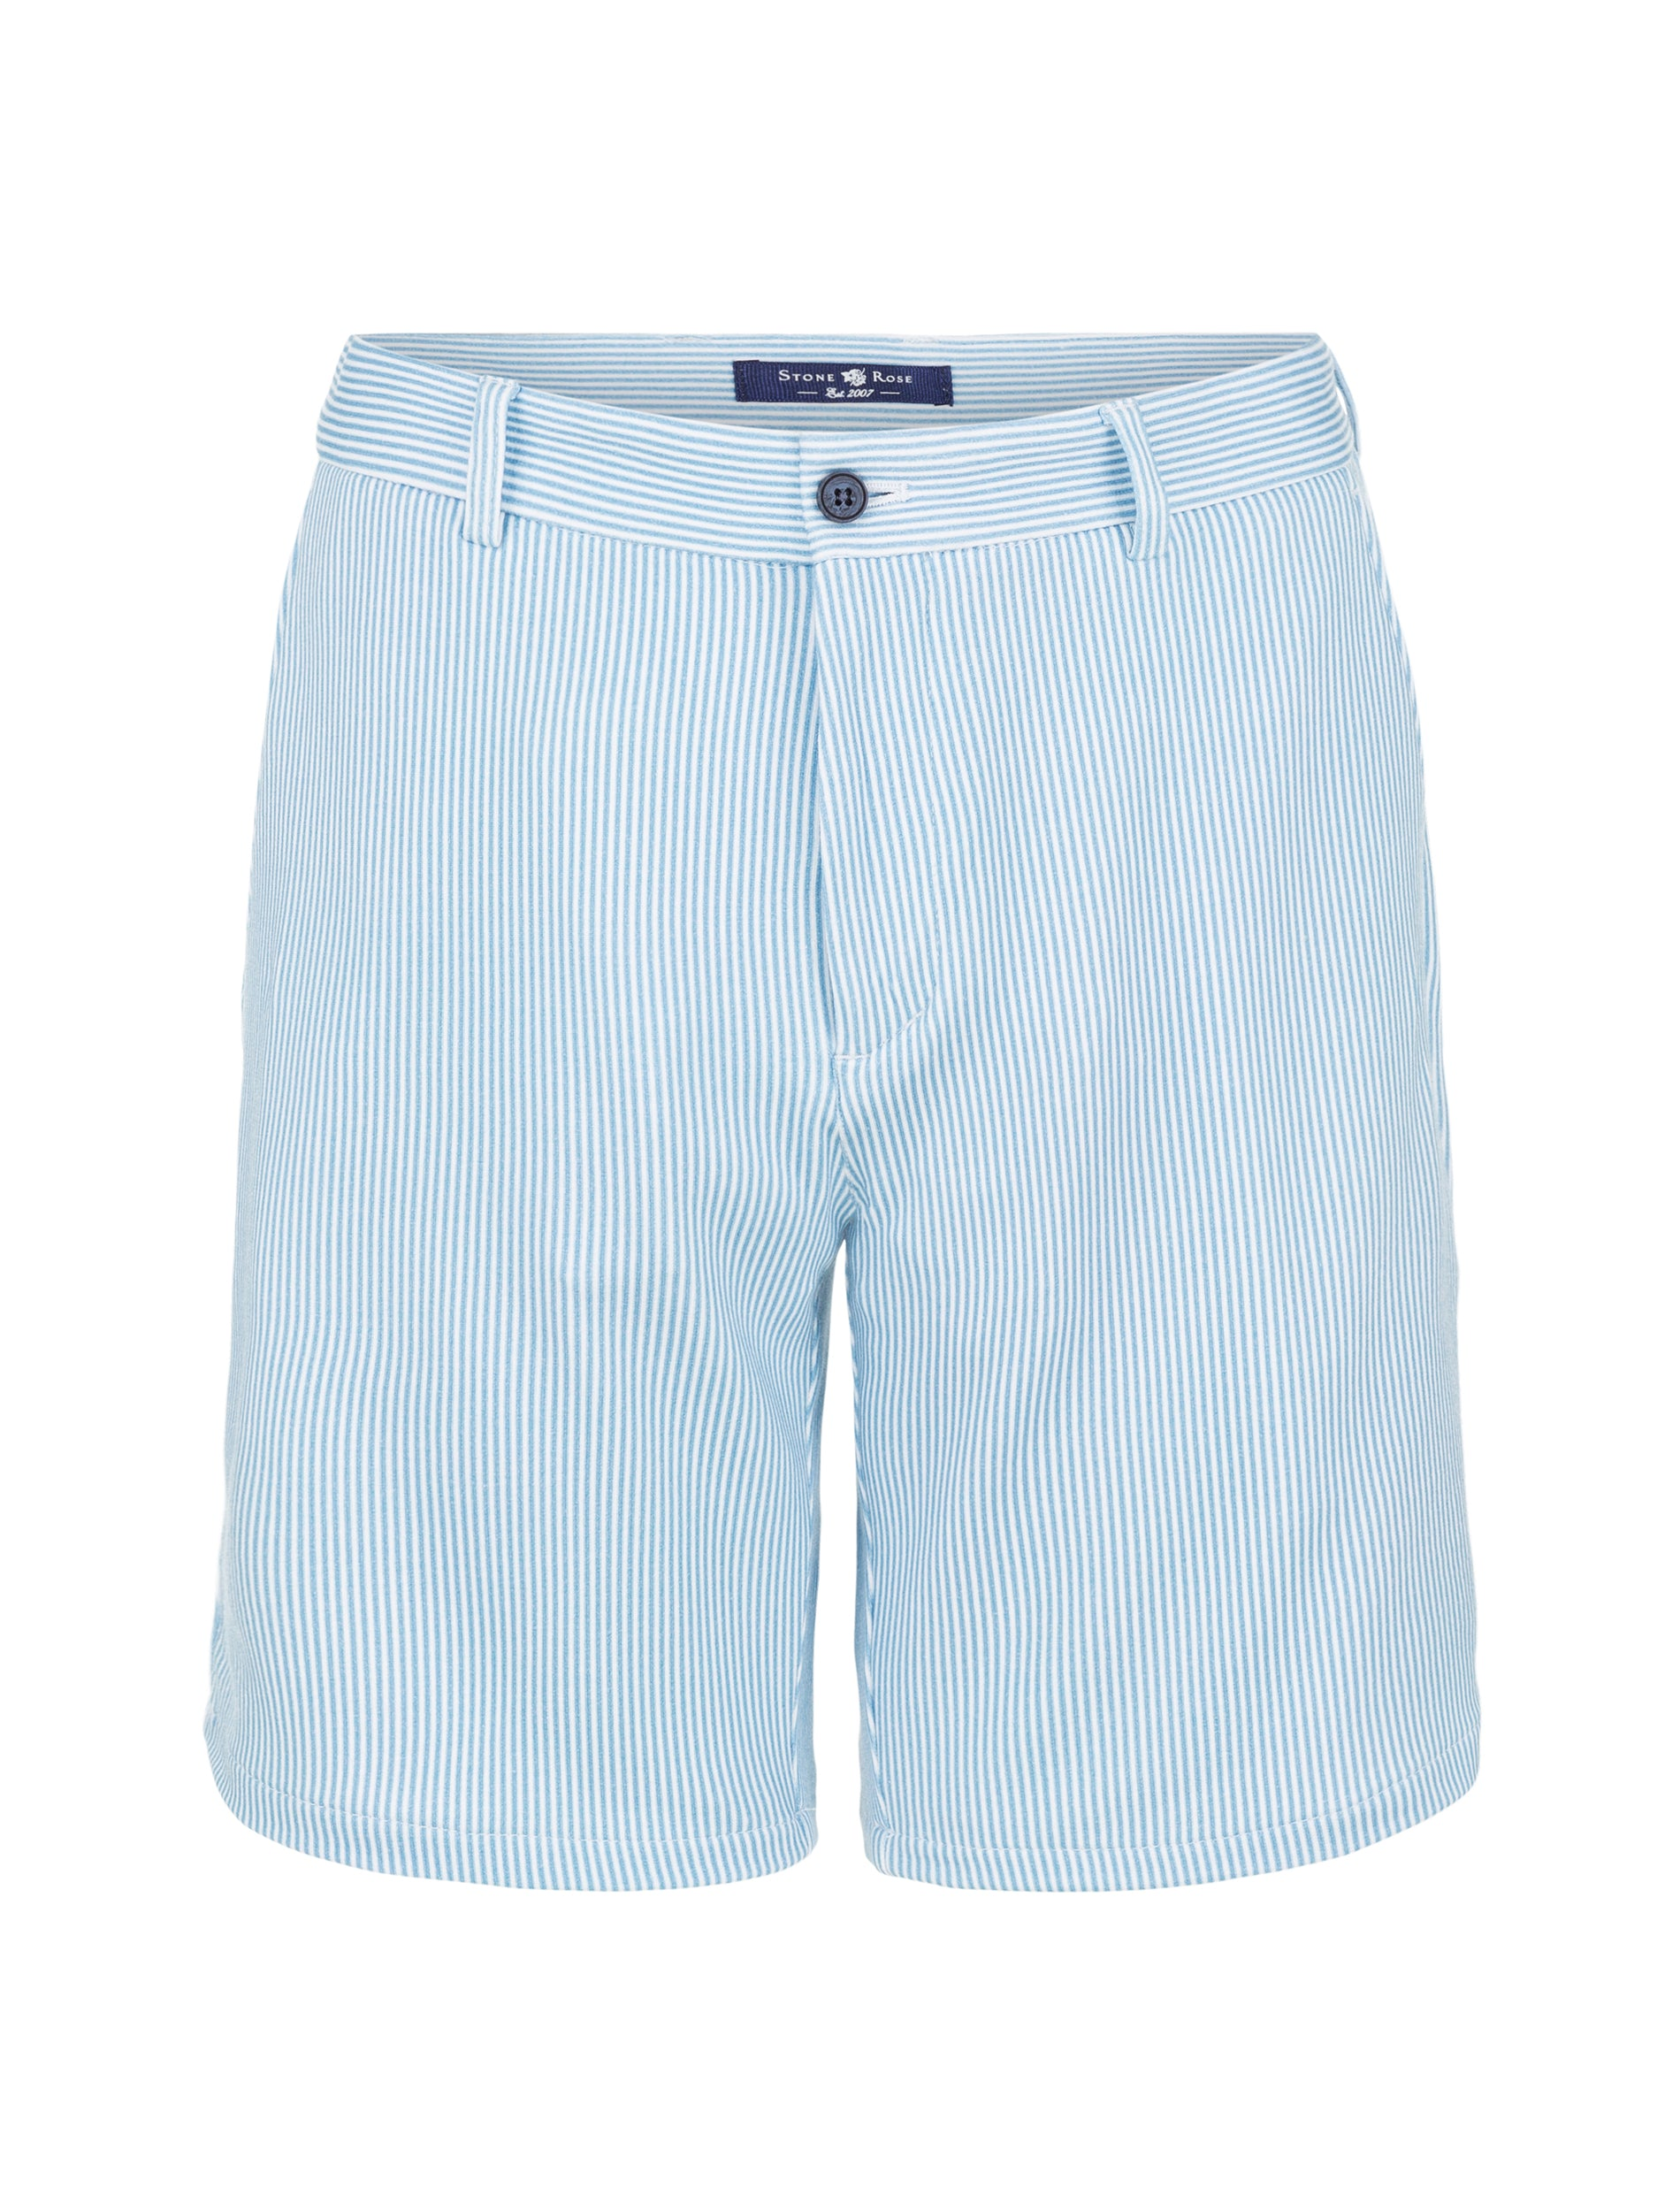 Light Blue Stripe Knit Shorts